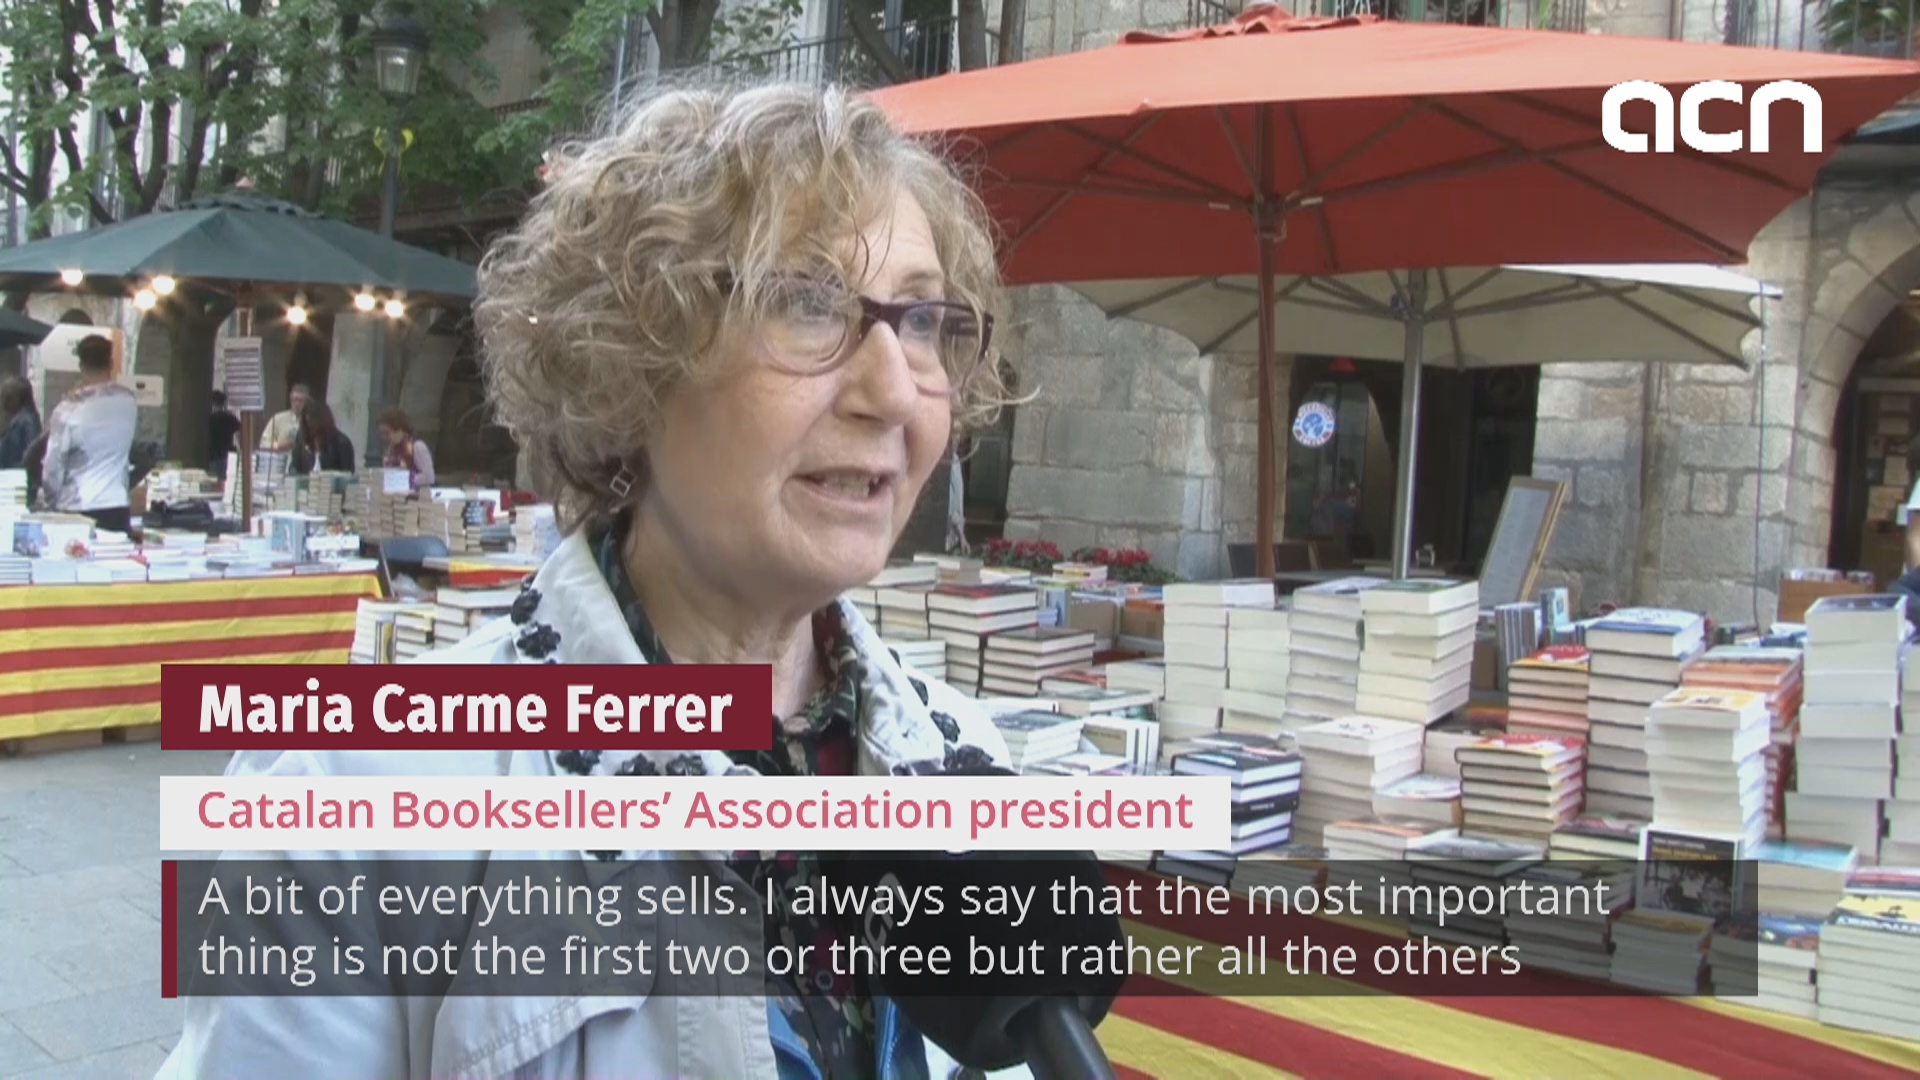 Fine weather on Sant Jordi makes booksellers optimistic